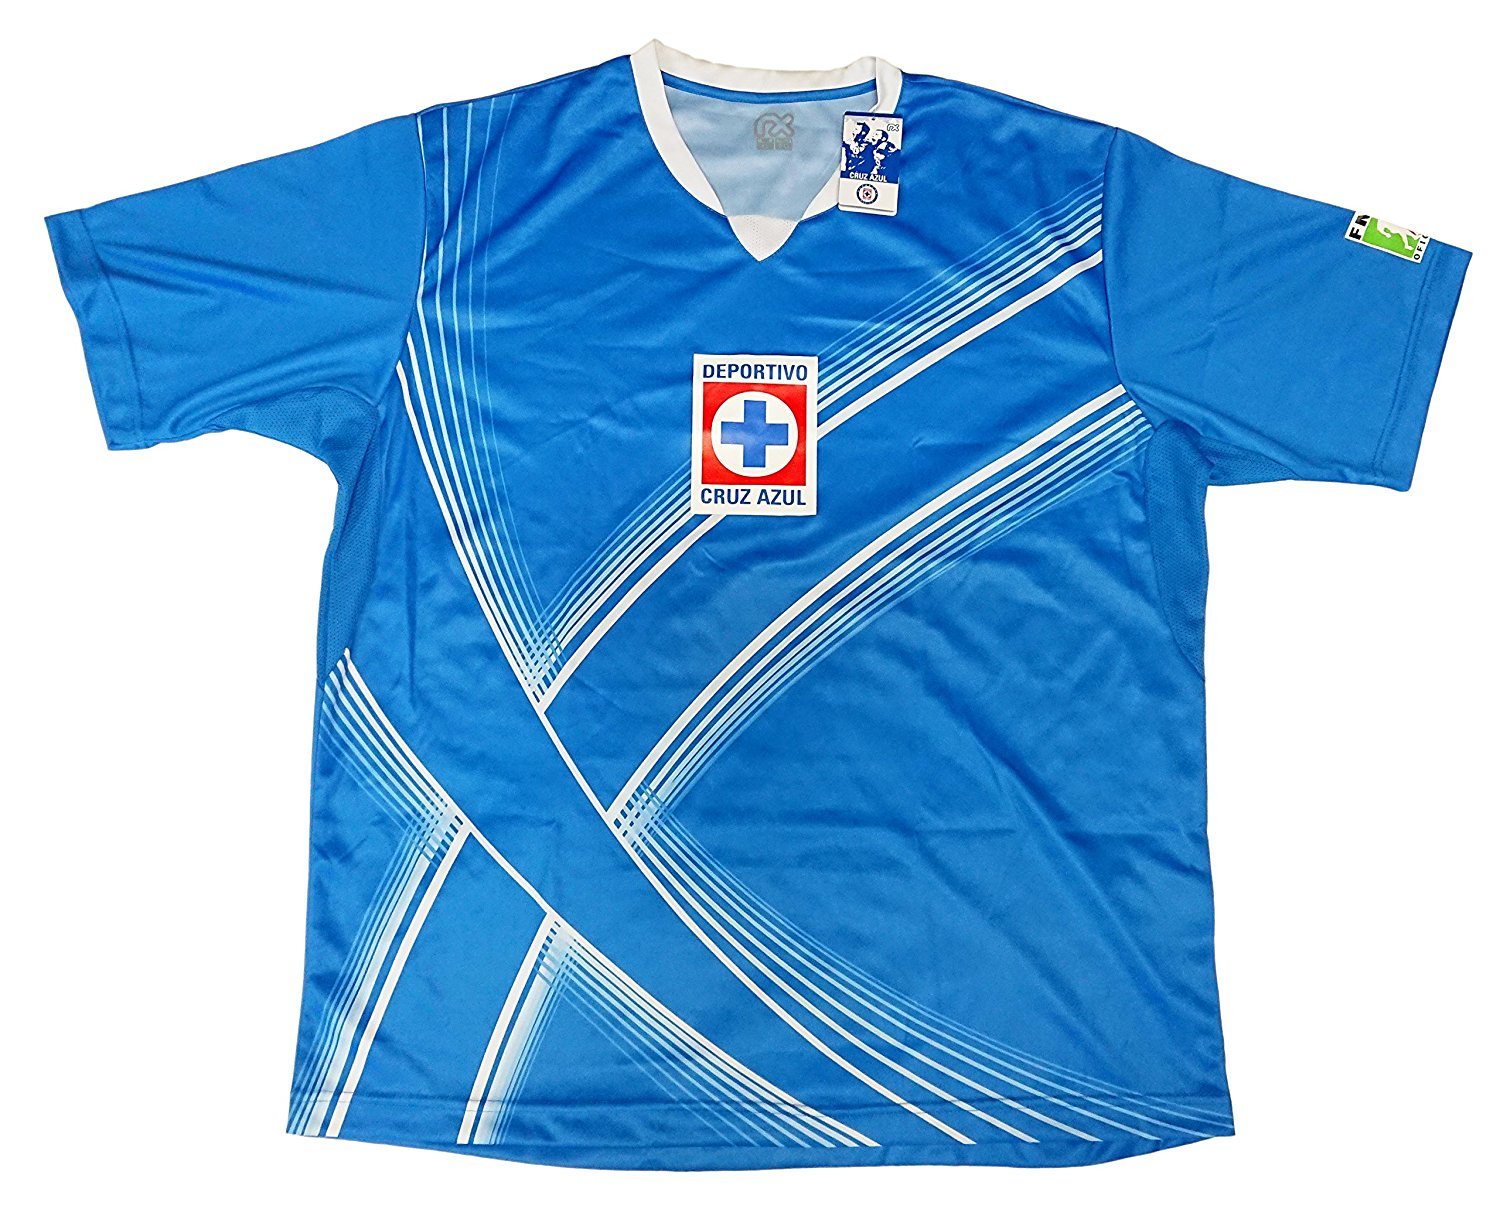 6ee489c22 Get Quotations · Cruz Azul Jersey Official Licensed by Rhinox Jersey